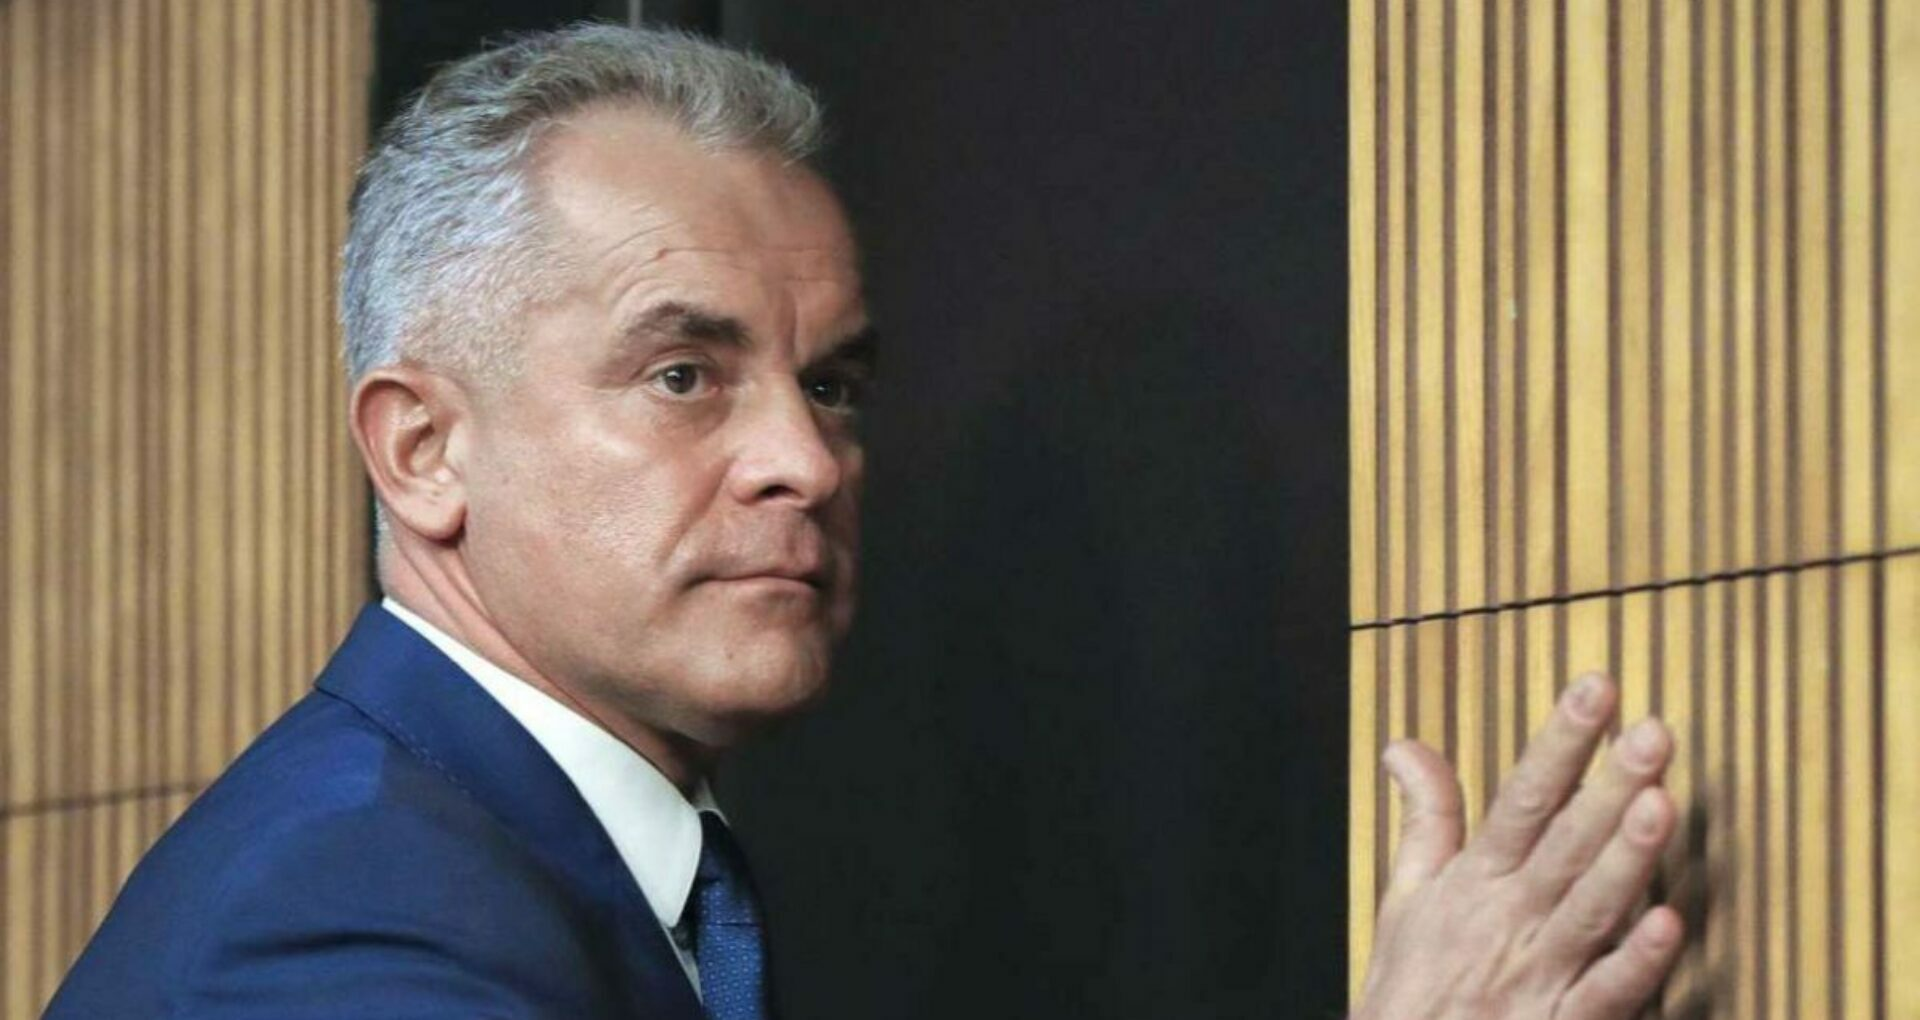 The U.S. Embassy in Moldova Confirms the Fugitive Vladimir Plahotniuc's Departure From the United States